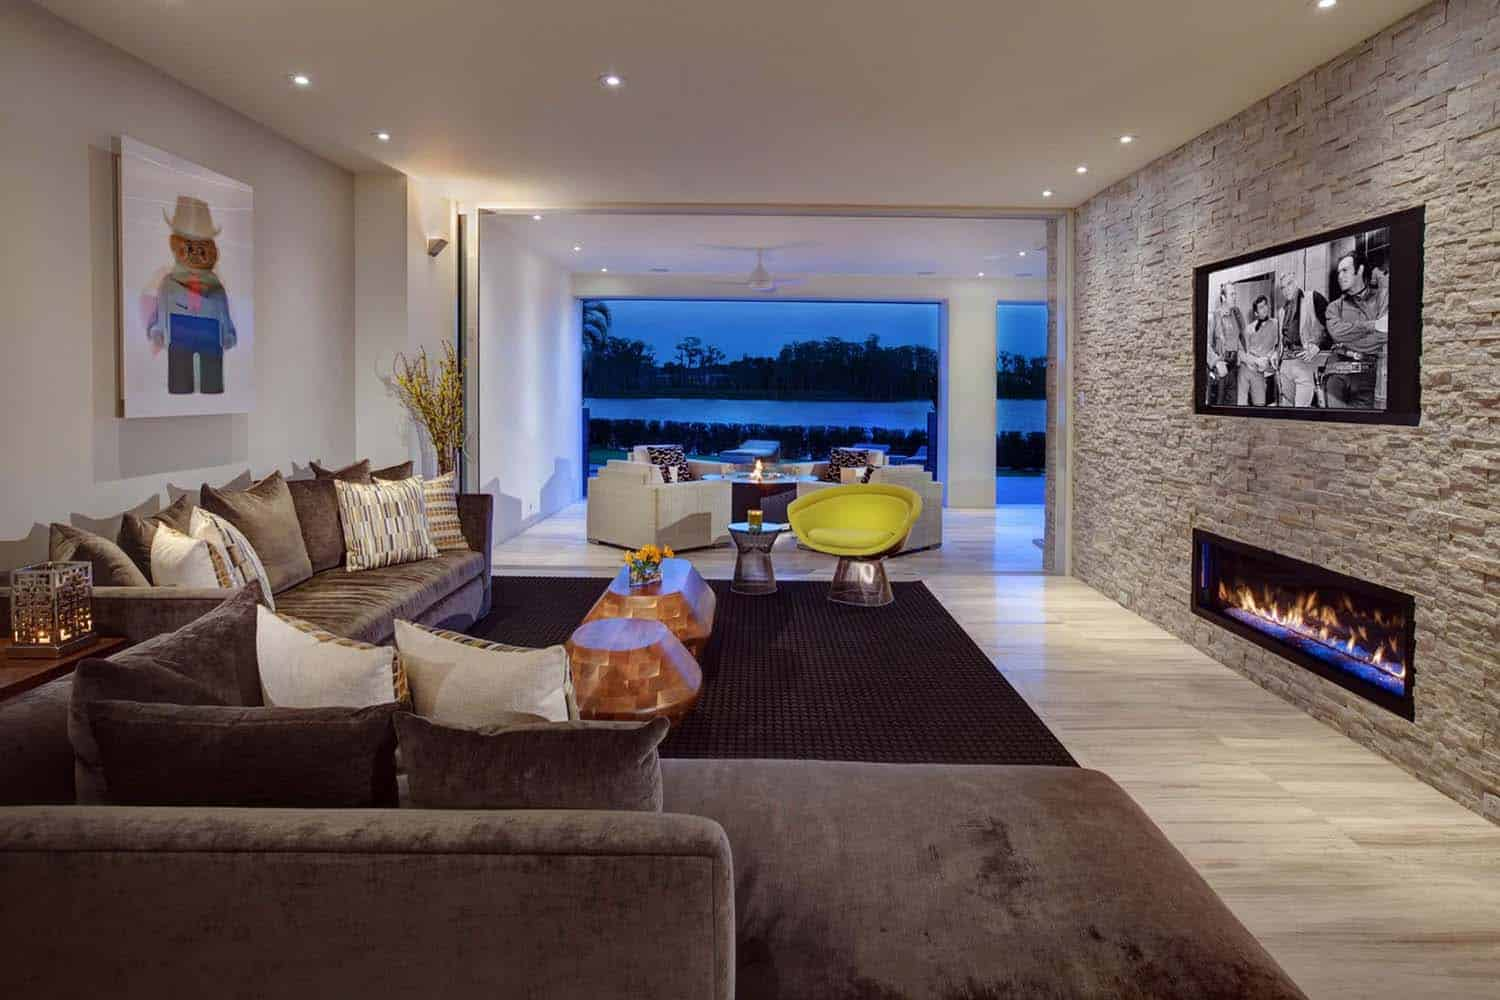 New modern home from Phil Kean designs with gorgeous interior design